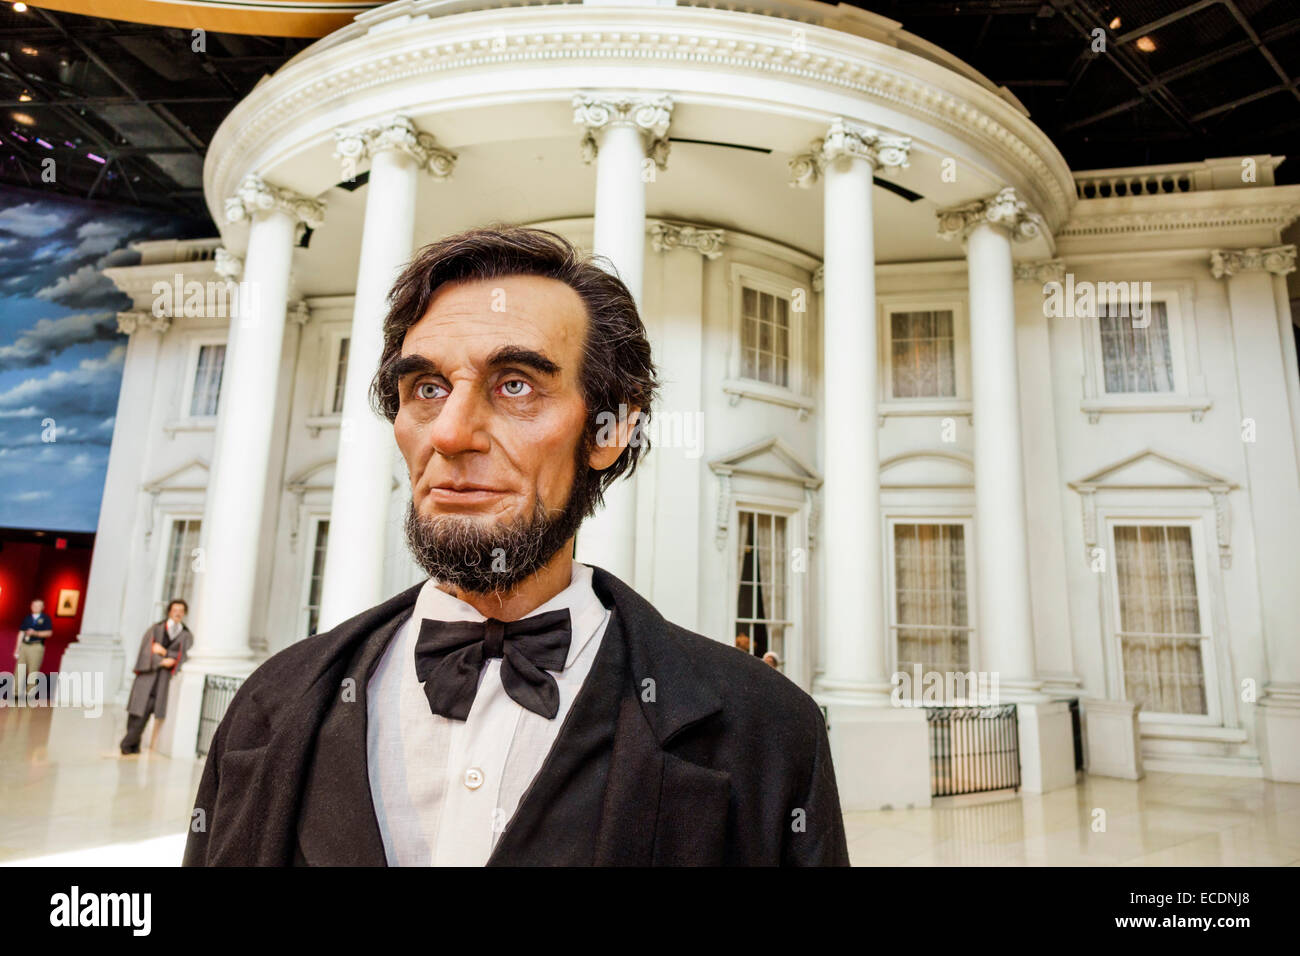 Springfield Illinois Abraham Lincoln Presidential Museum inside life-size life-like statue The White House - Stock Image